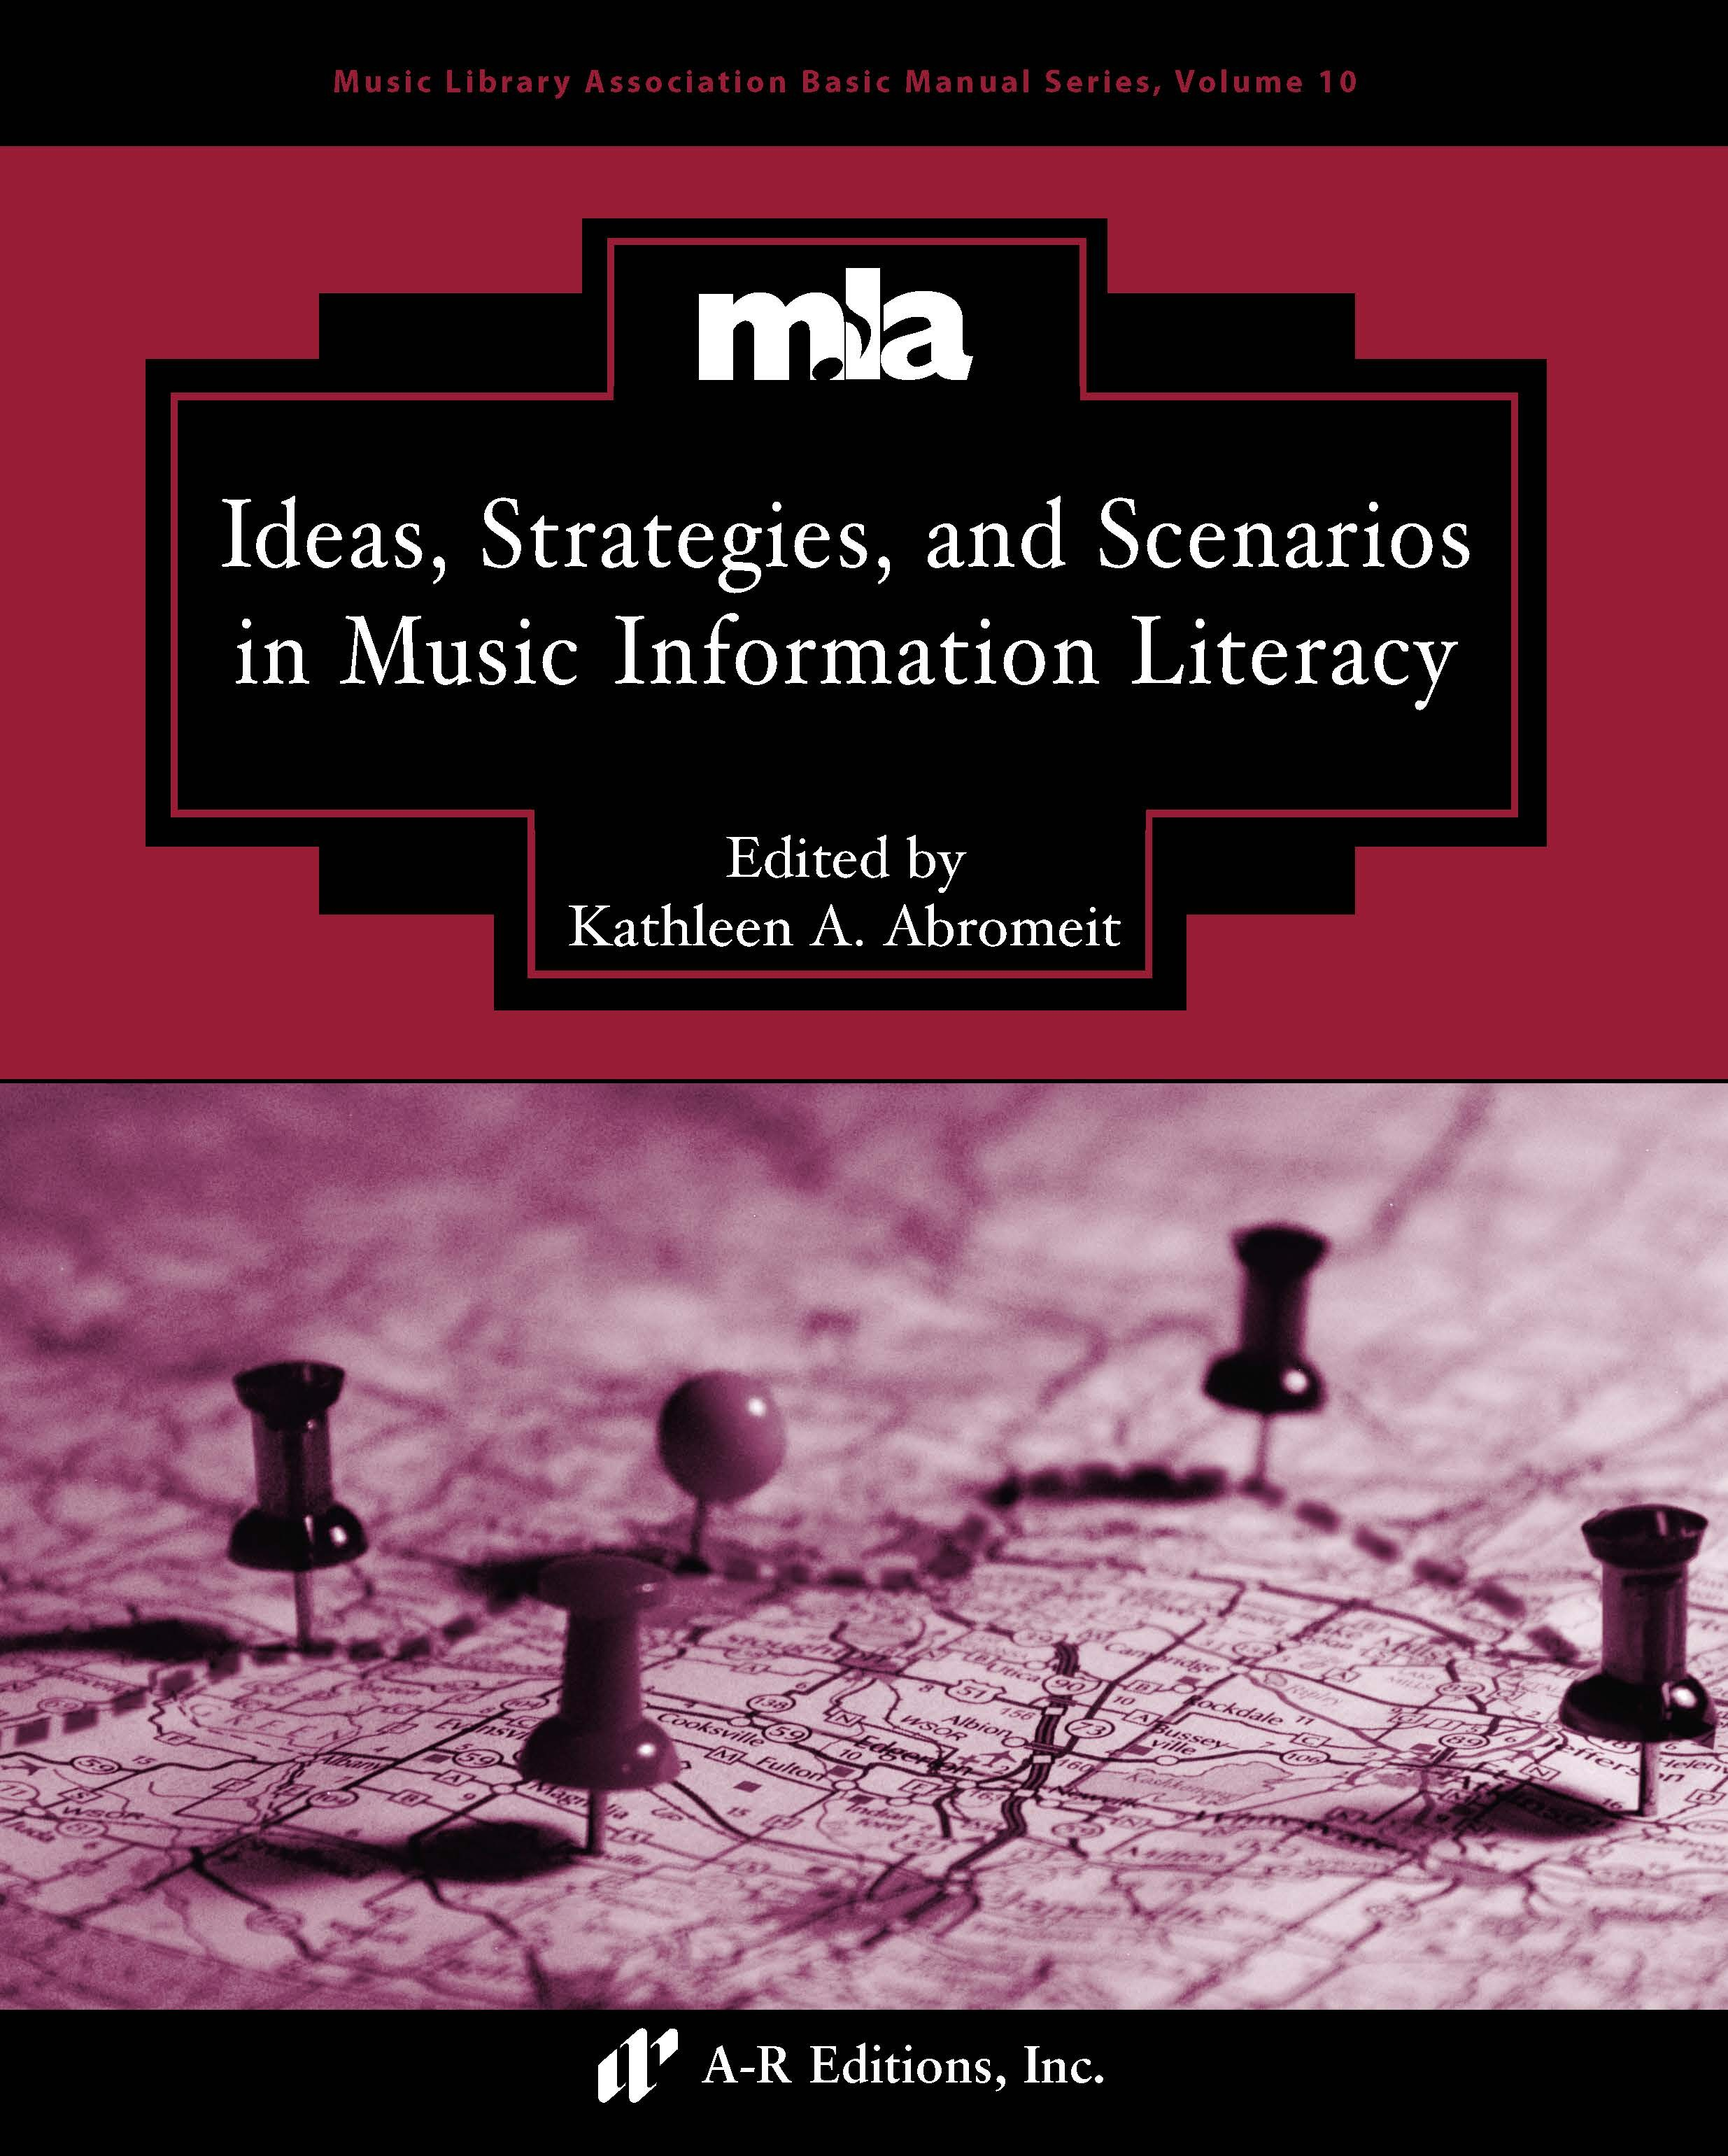 Abromeit: Ideas, Strategies, and Scenarios in Music Information Literacy